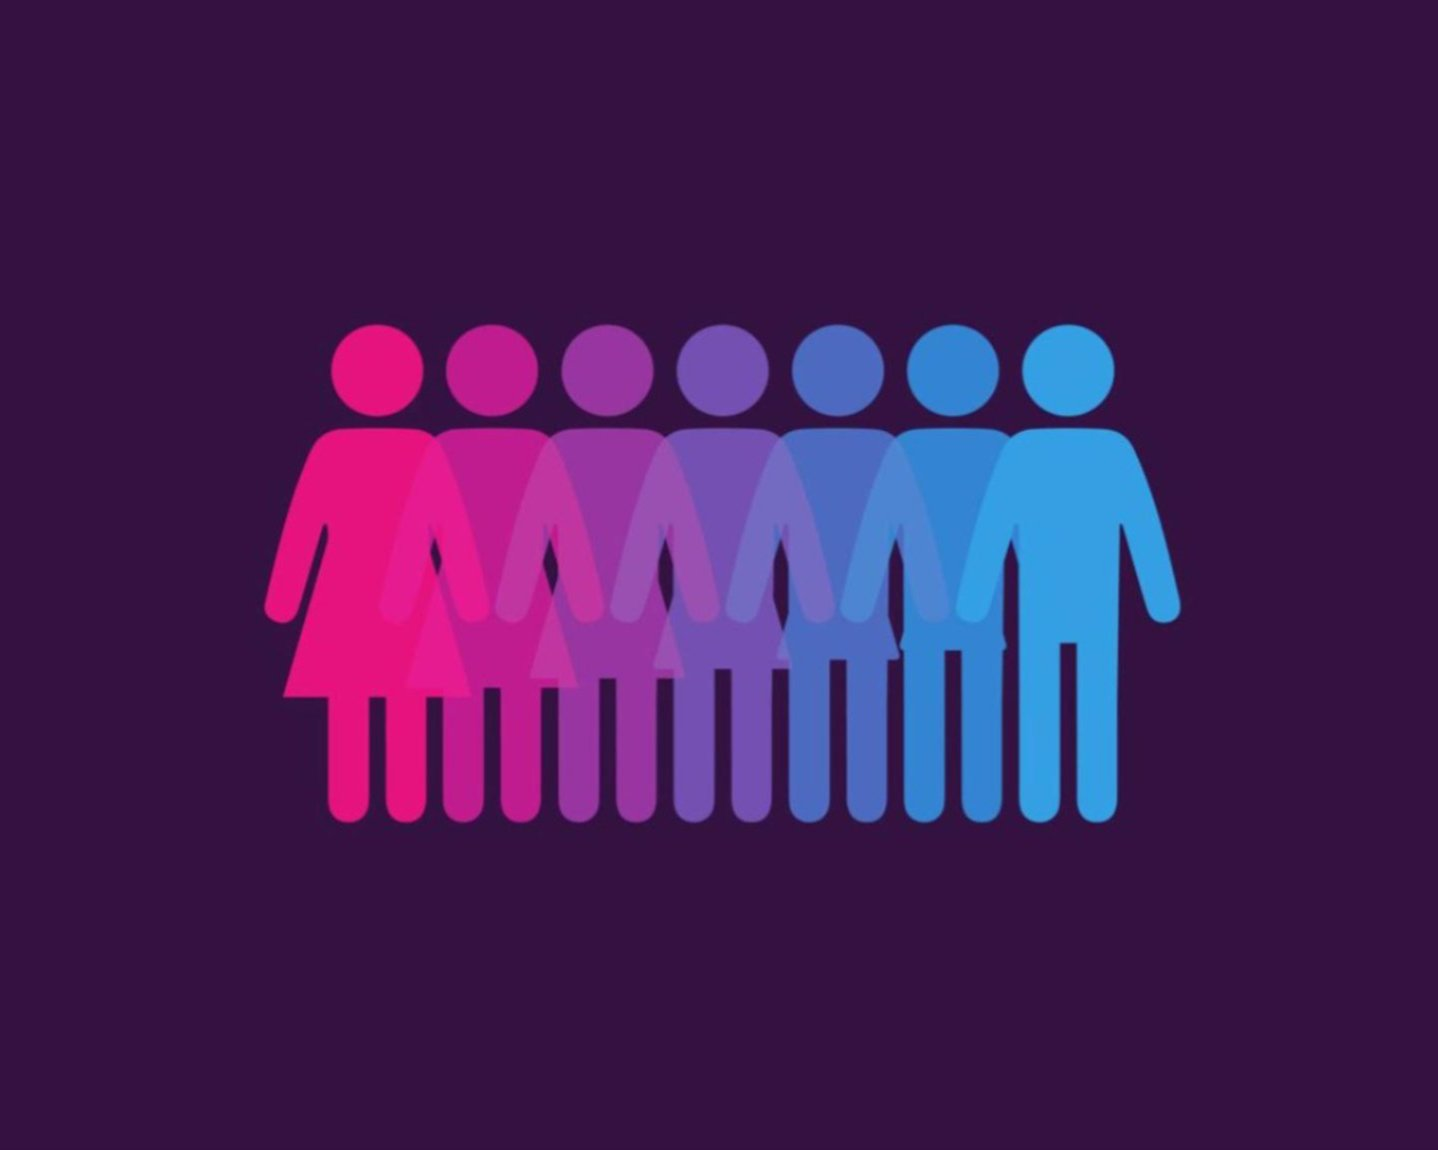 On the left there is a pink female outline on the right there is a blue male outline. Between the two are a gradient of transformations between the two genders ranging from pink to blue. The image is sat against a navy background.